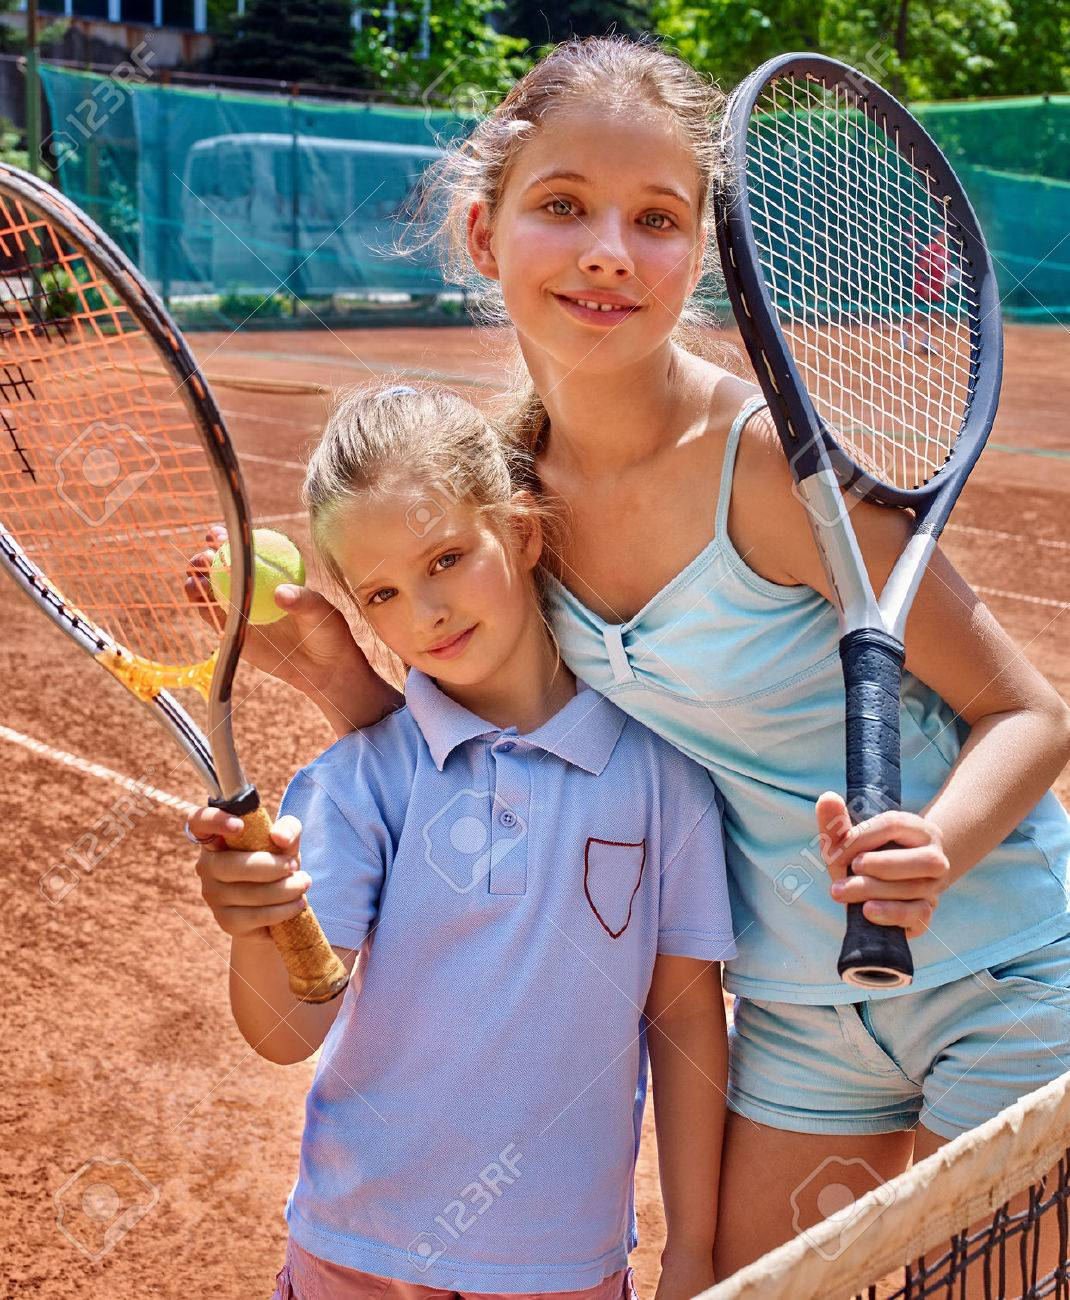 Two sport kids girl with racket and ball on brown tennis court. - 40457152